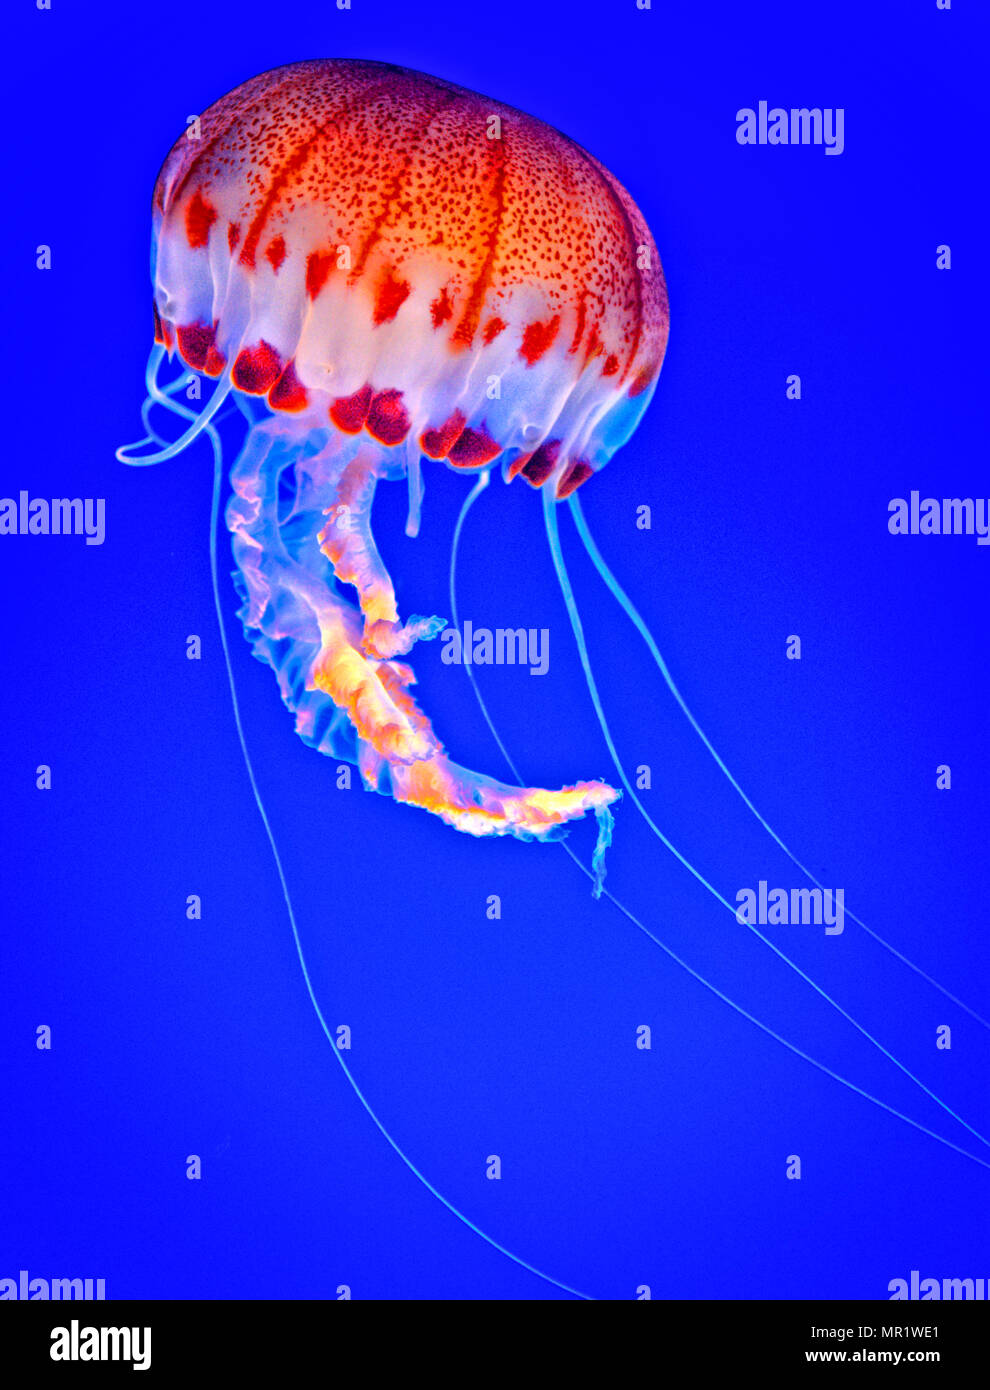 A striking jellyfish (Chrysaora colorata) at the Monterey Bay Aquarium, CA - Stock Image